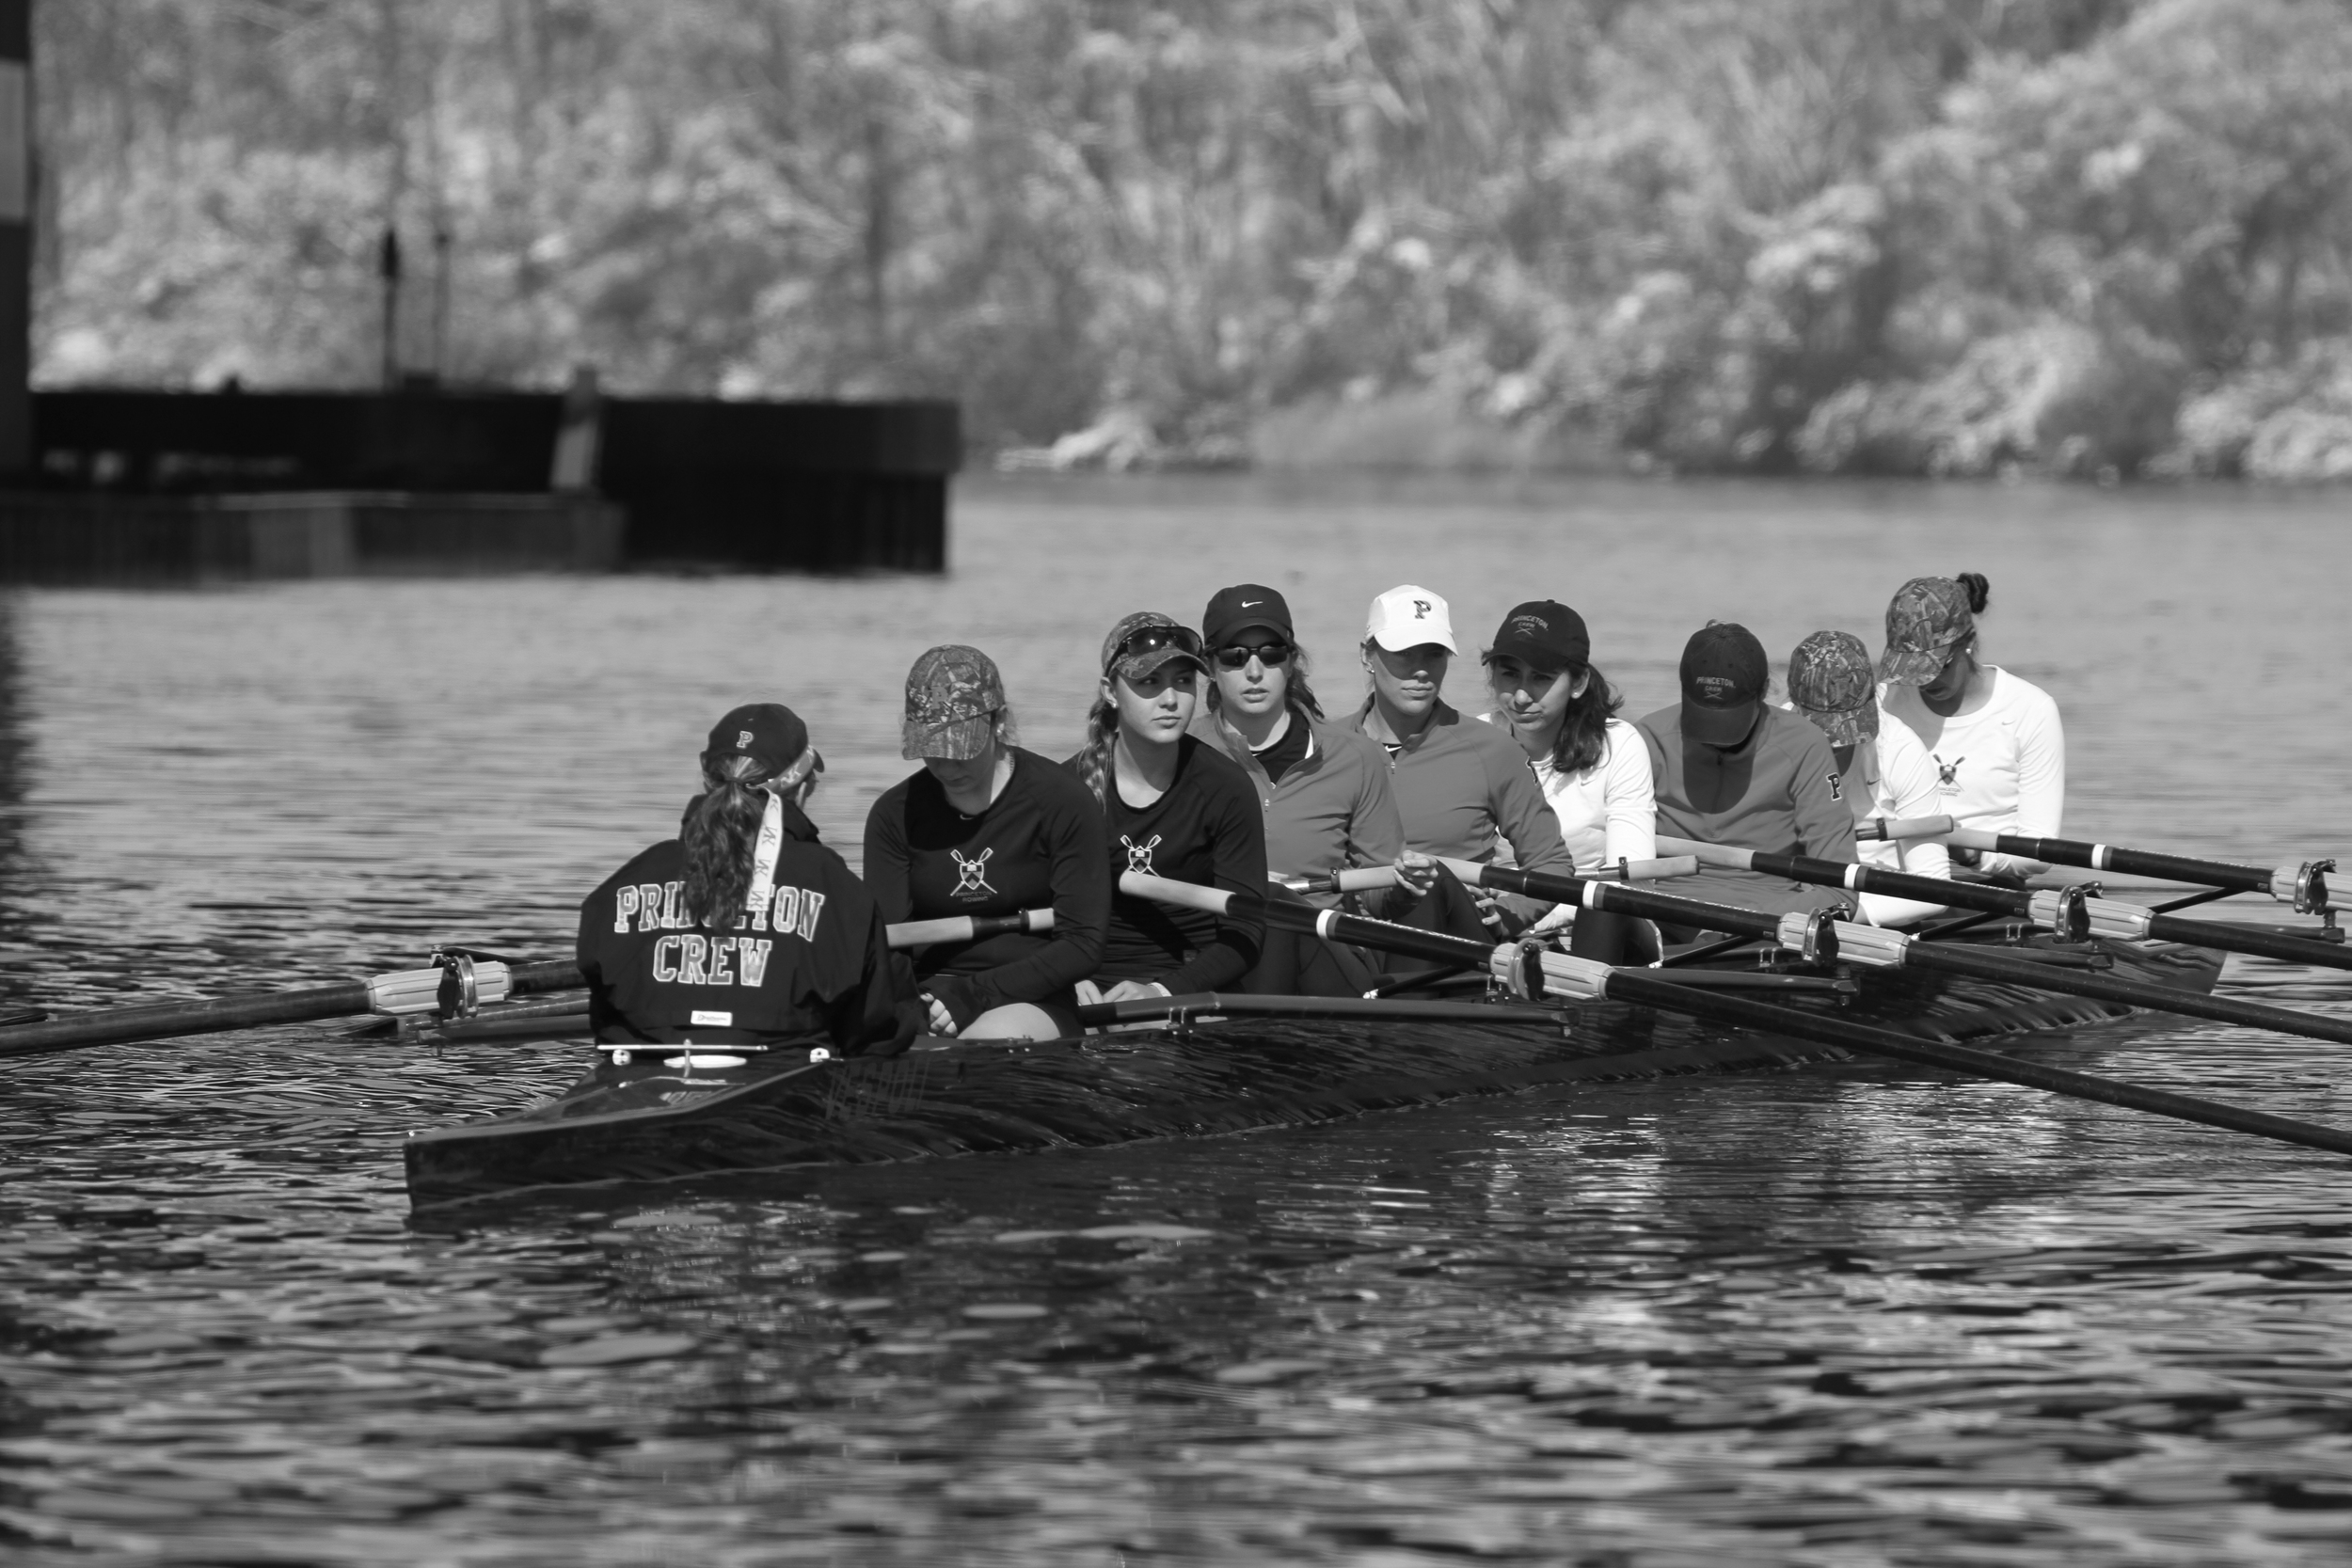 The 1v chilling - literally - between pieces